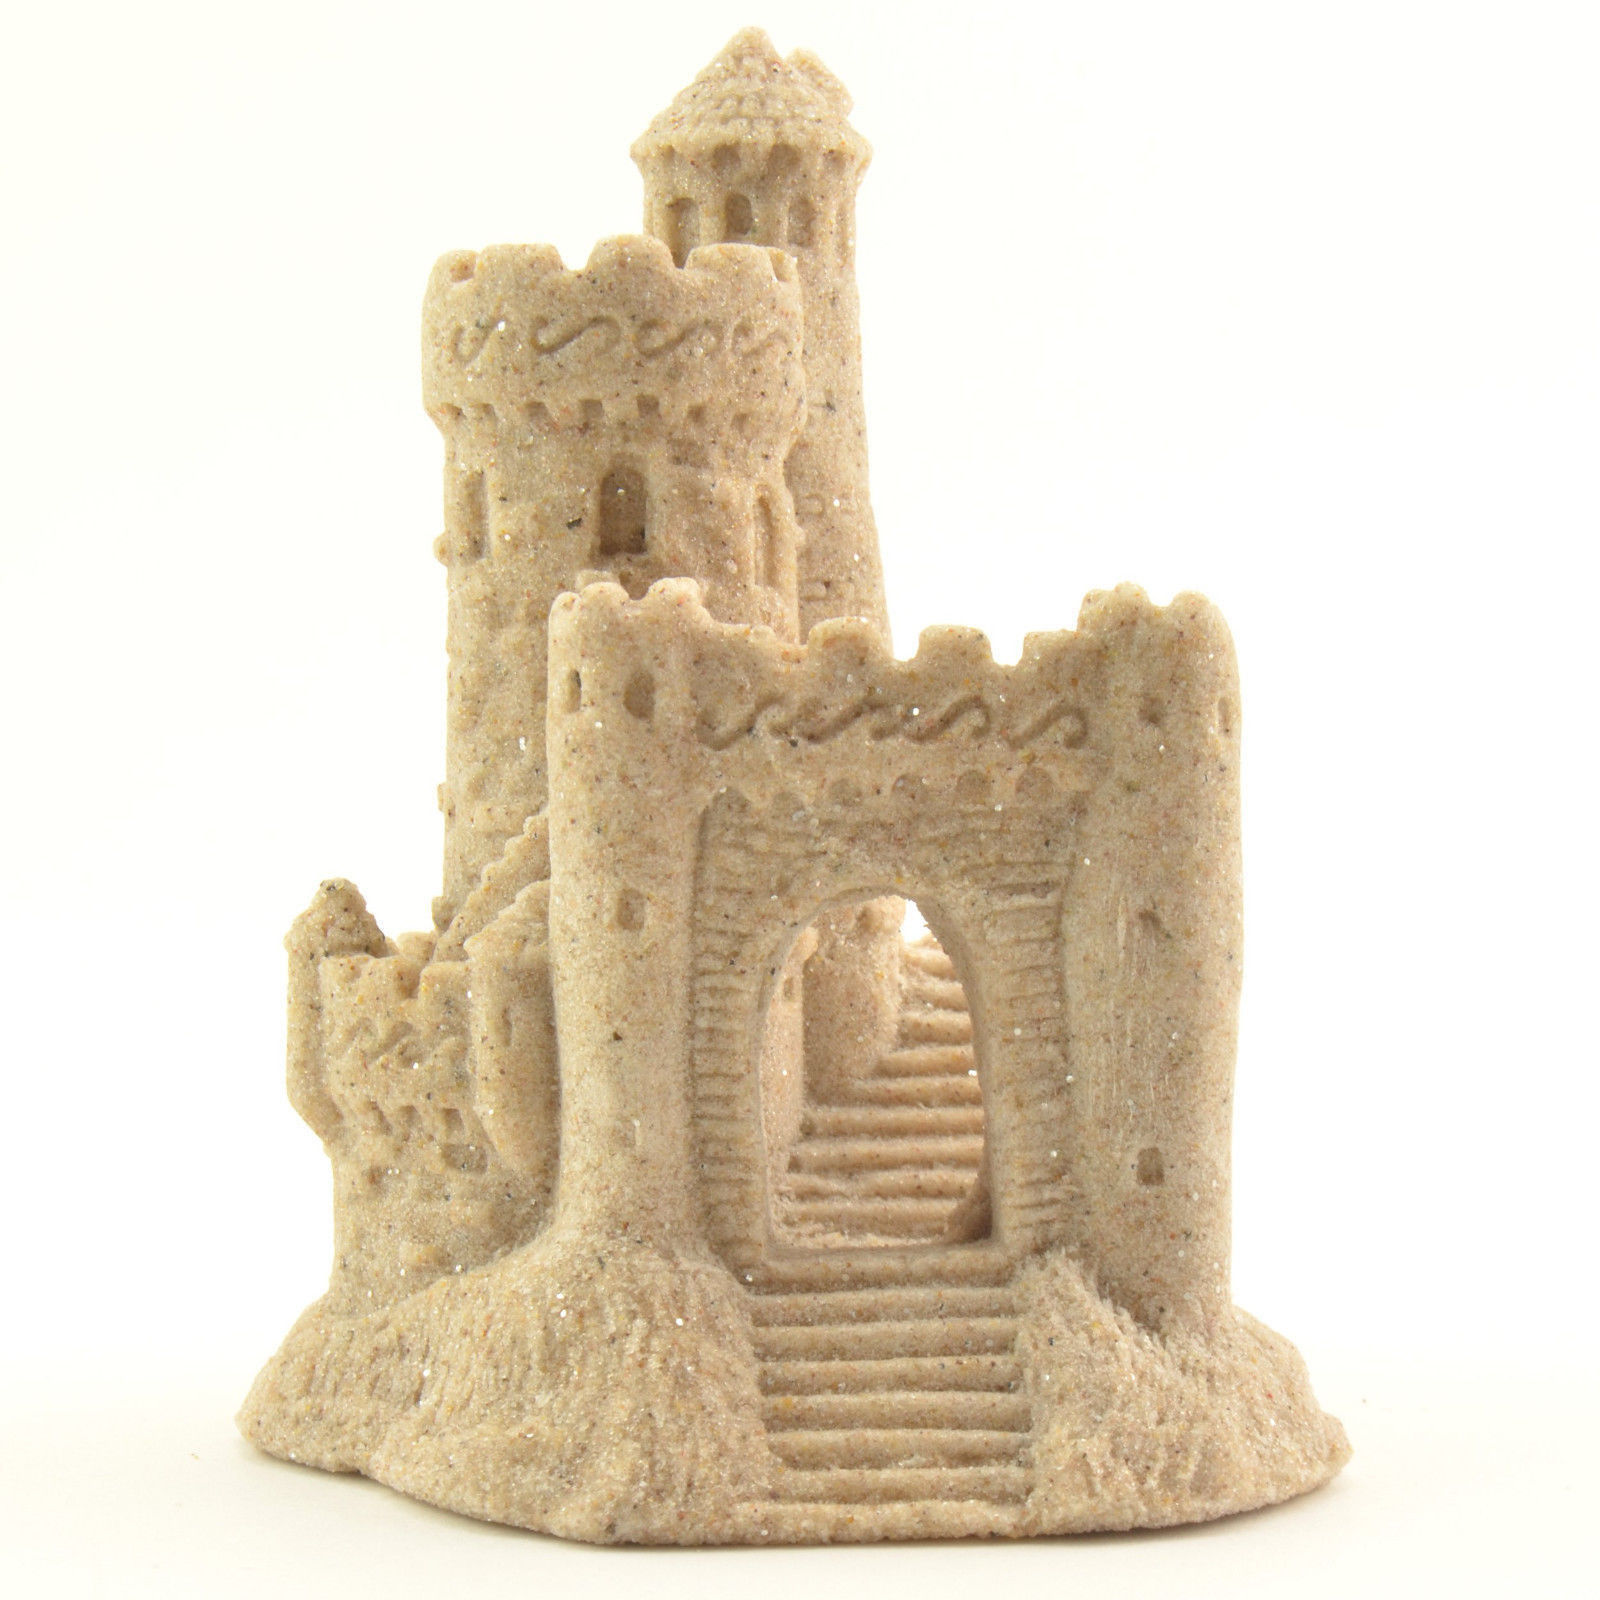 "Primary image for Real Sand Castle Figurine 118 4"" Tall Collectible Beach Home Wedding Decor N"